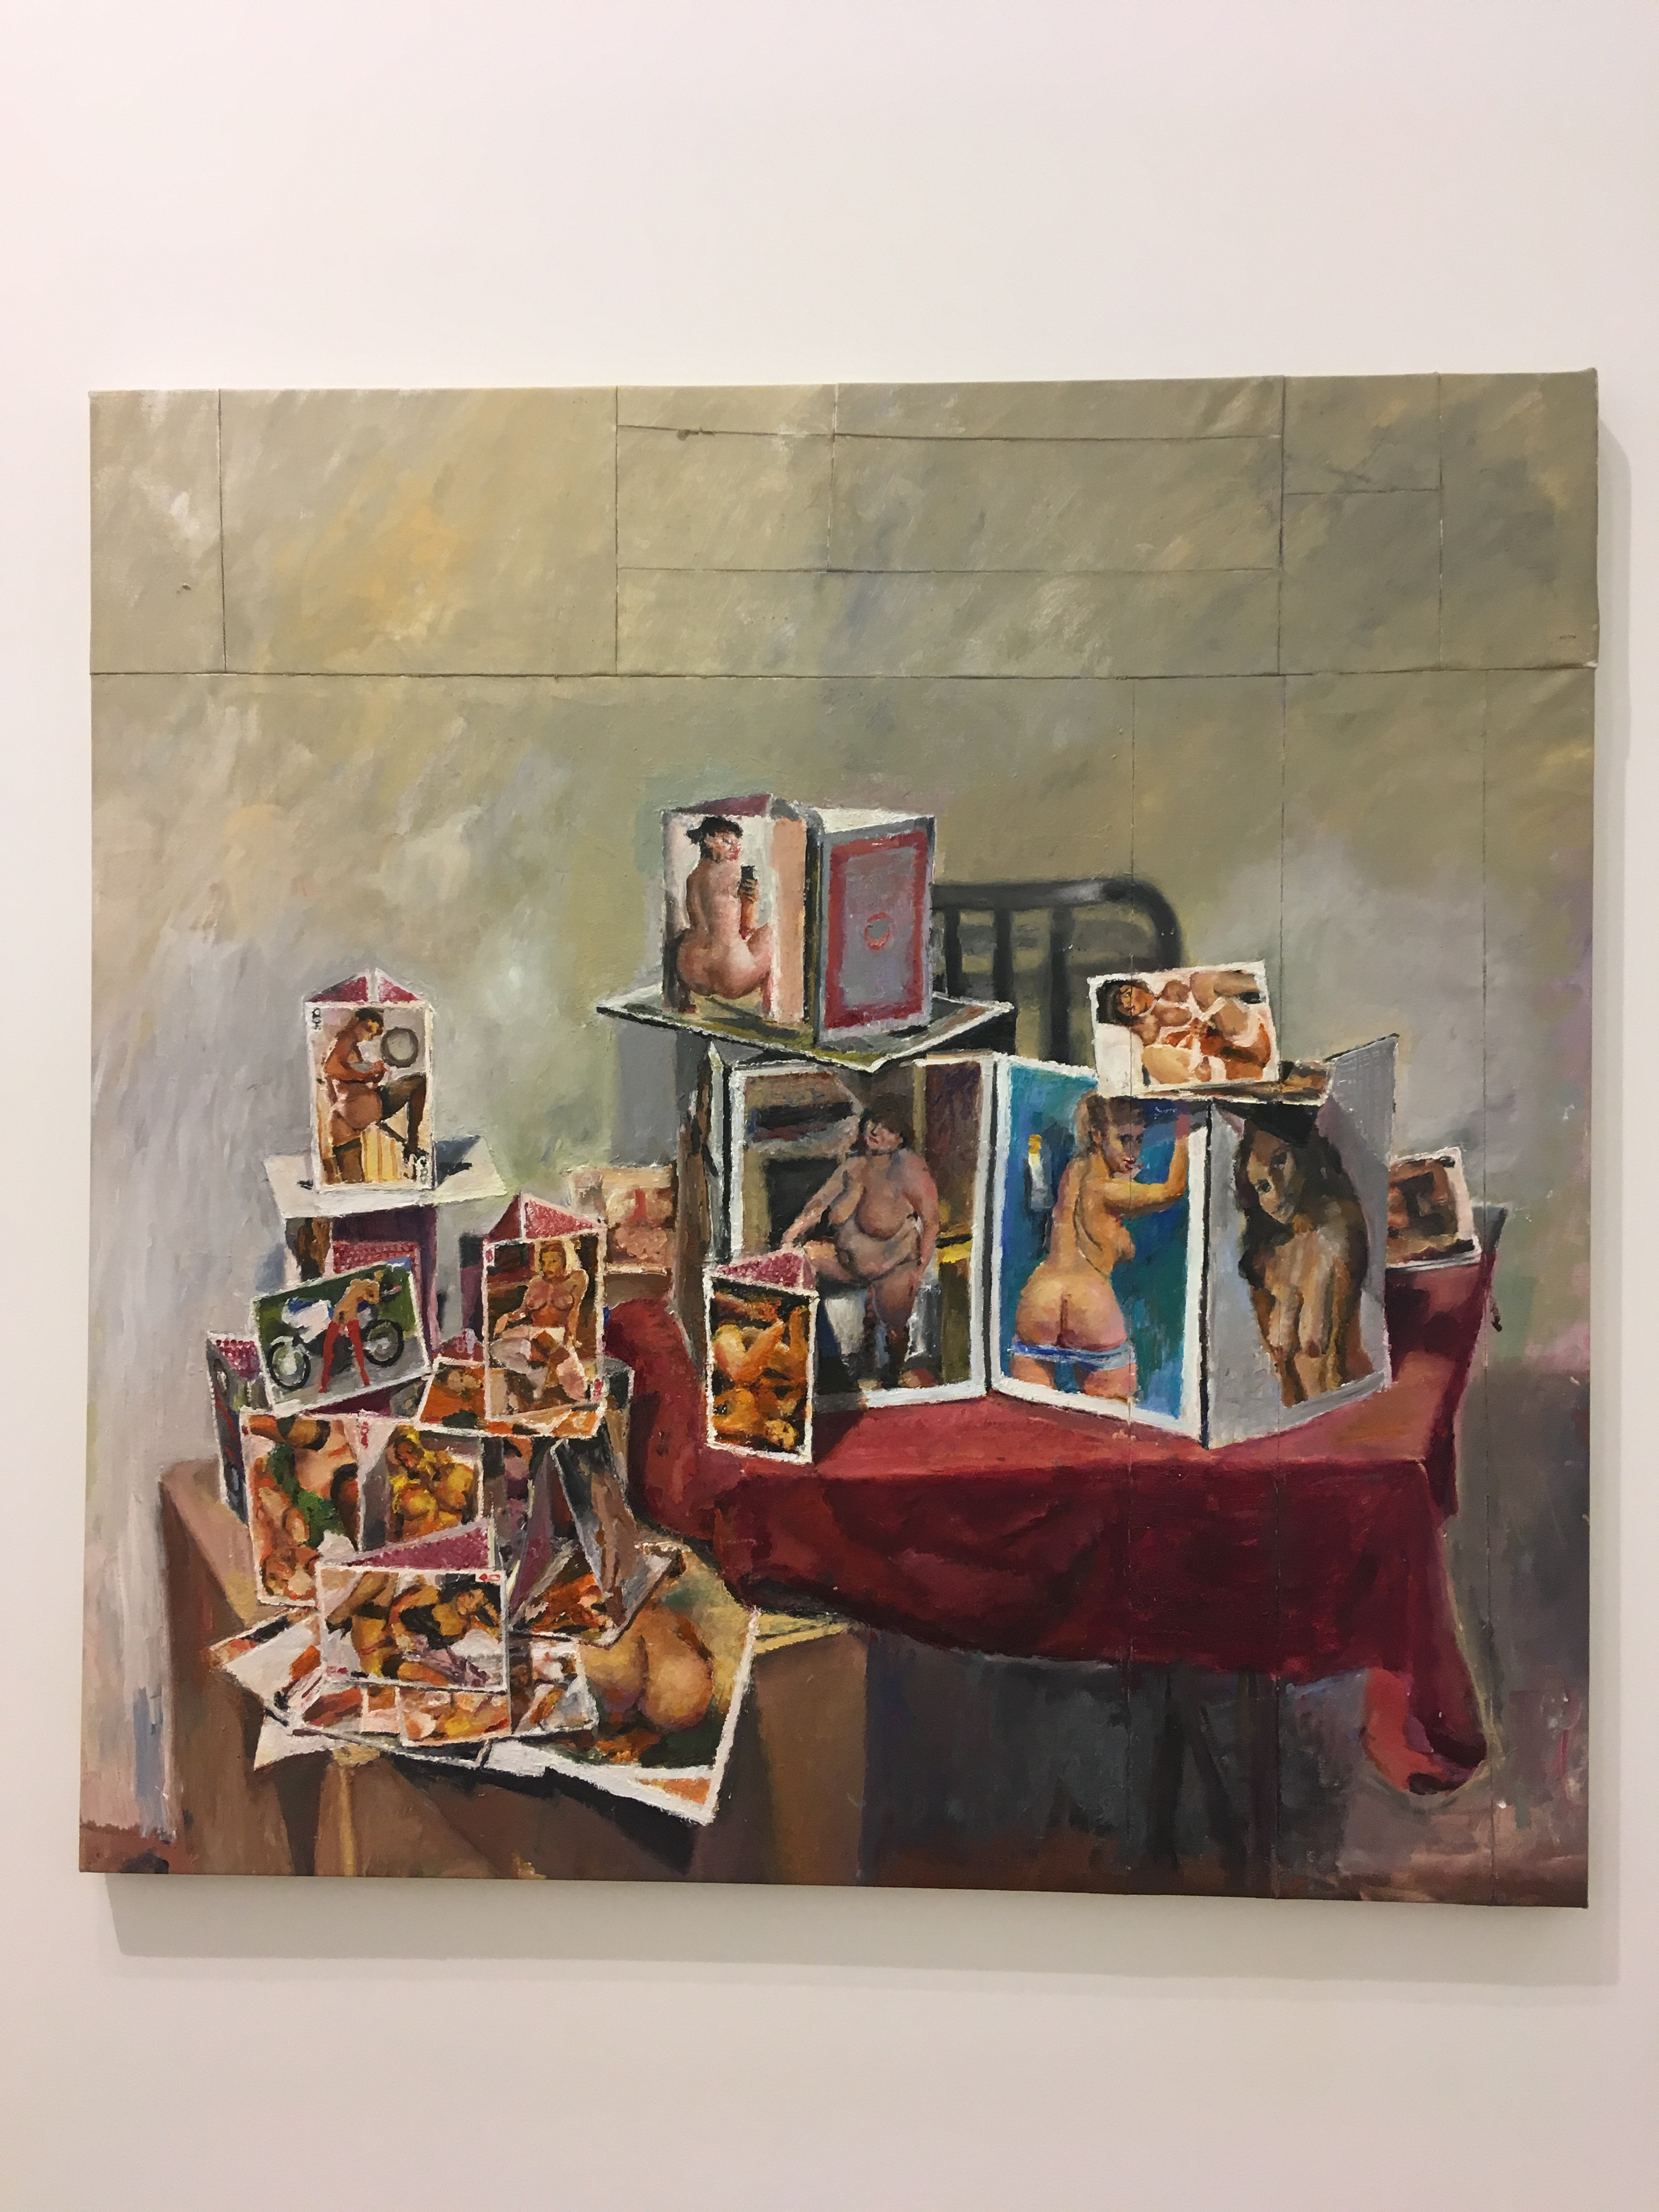 Nude card houses, courthouse oil painting, I oil painting by Jesse Edwards, nude contemporary art, fine art Diane Rosenstein